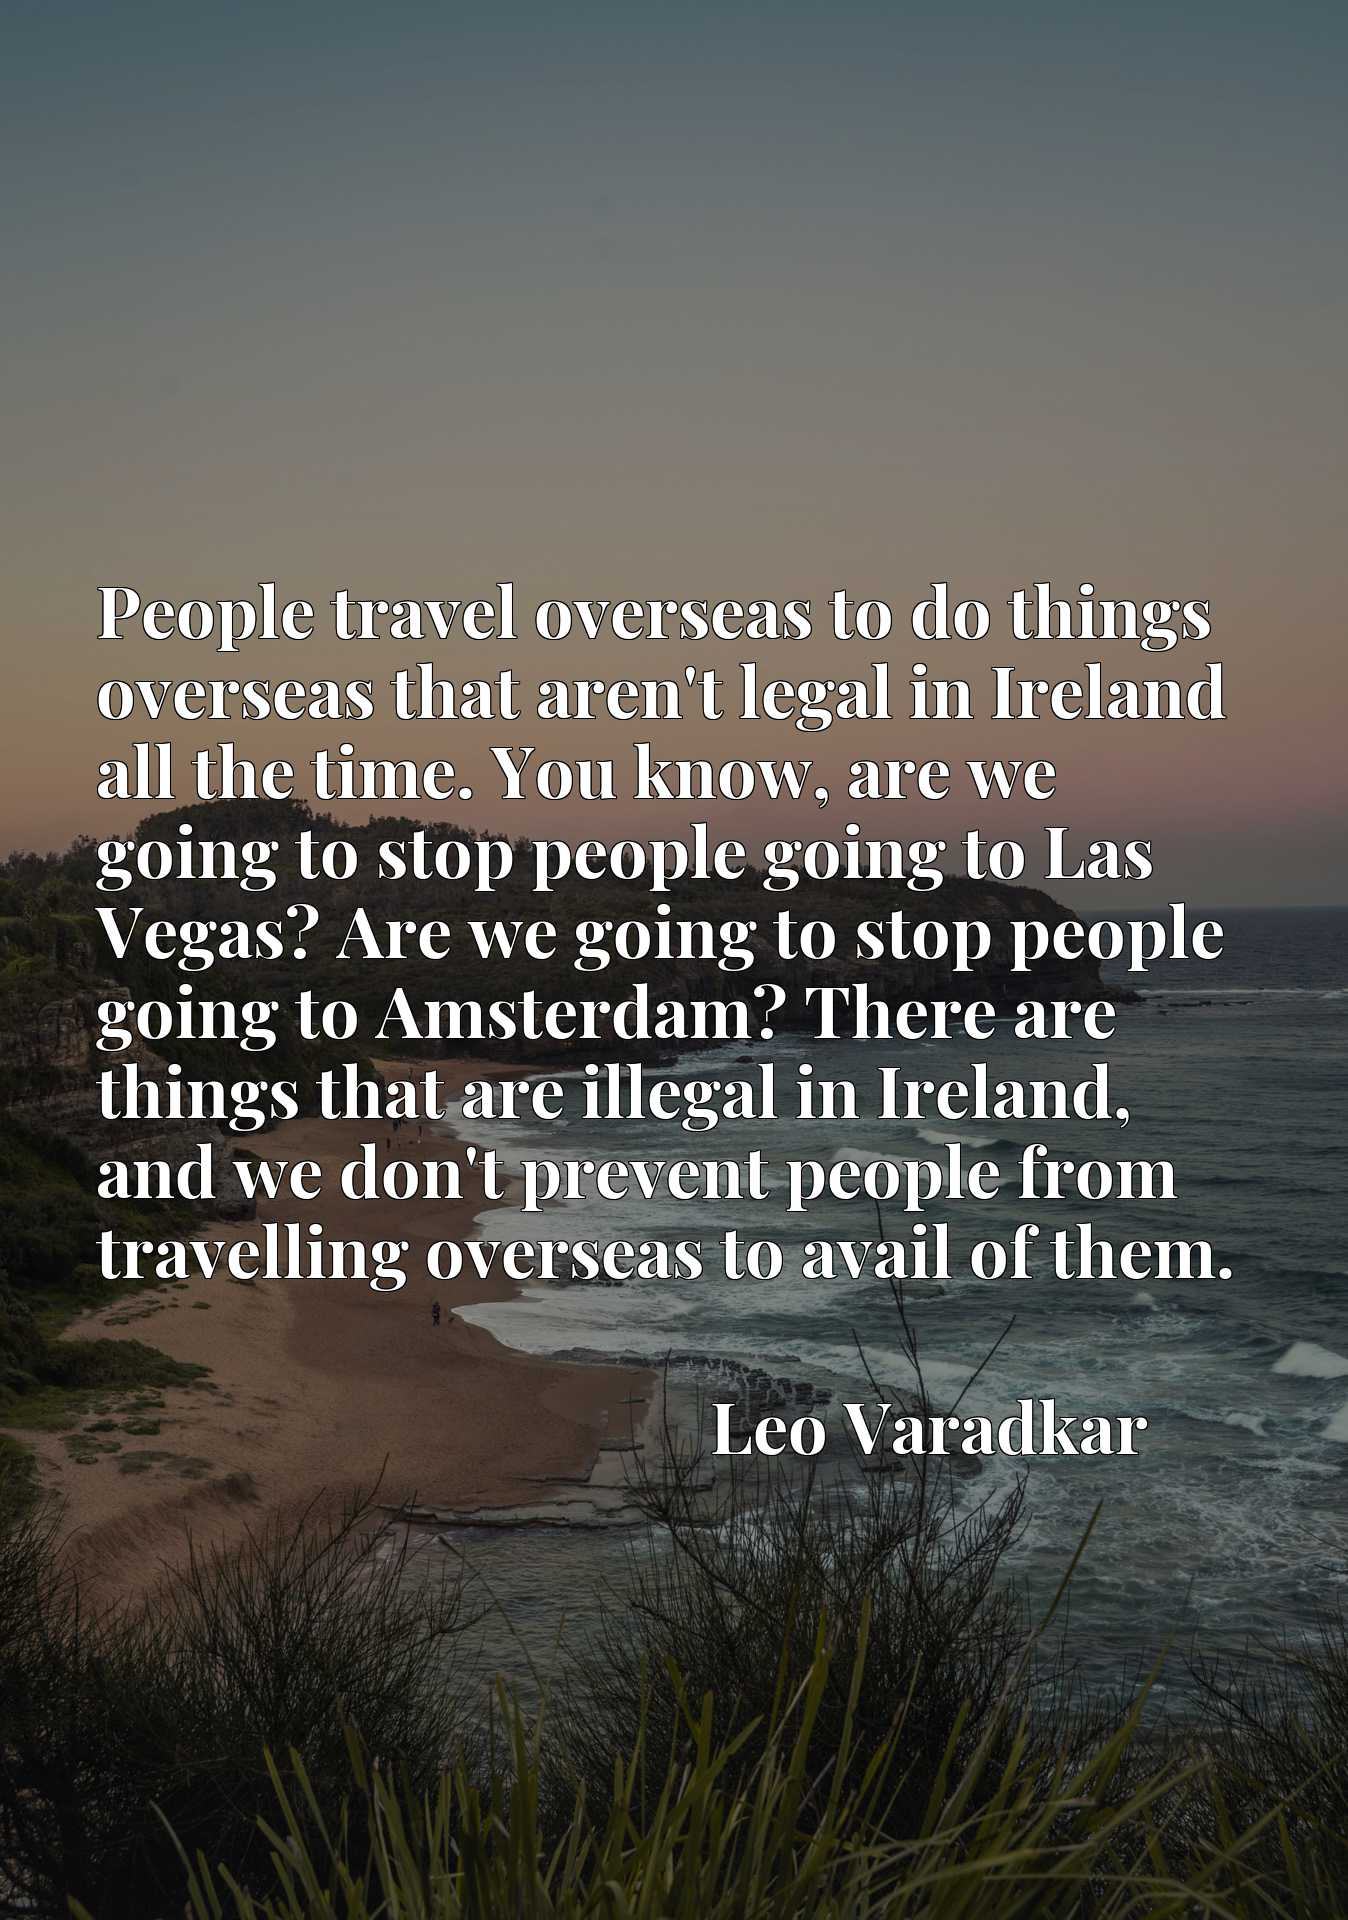 People travel overseas to do things overseas that aren't legal in Ireland all the time. You know, are we going to stop people going to Las Vegas? Are we going to stop people going to Amsterdam? There are things that are illegal in Ireland, and we don't prevent people from travelling overseas to avail of them.